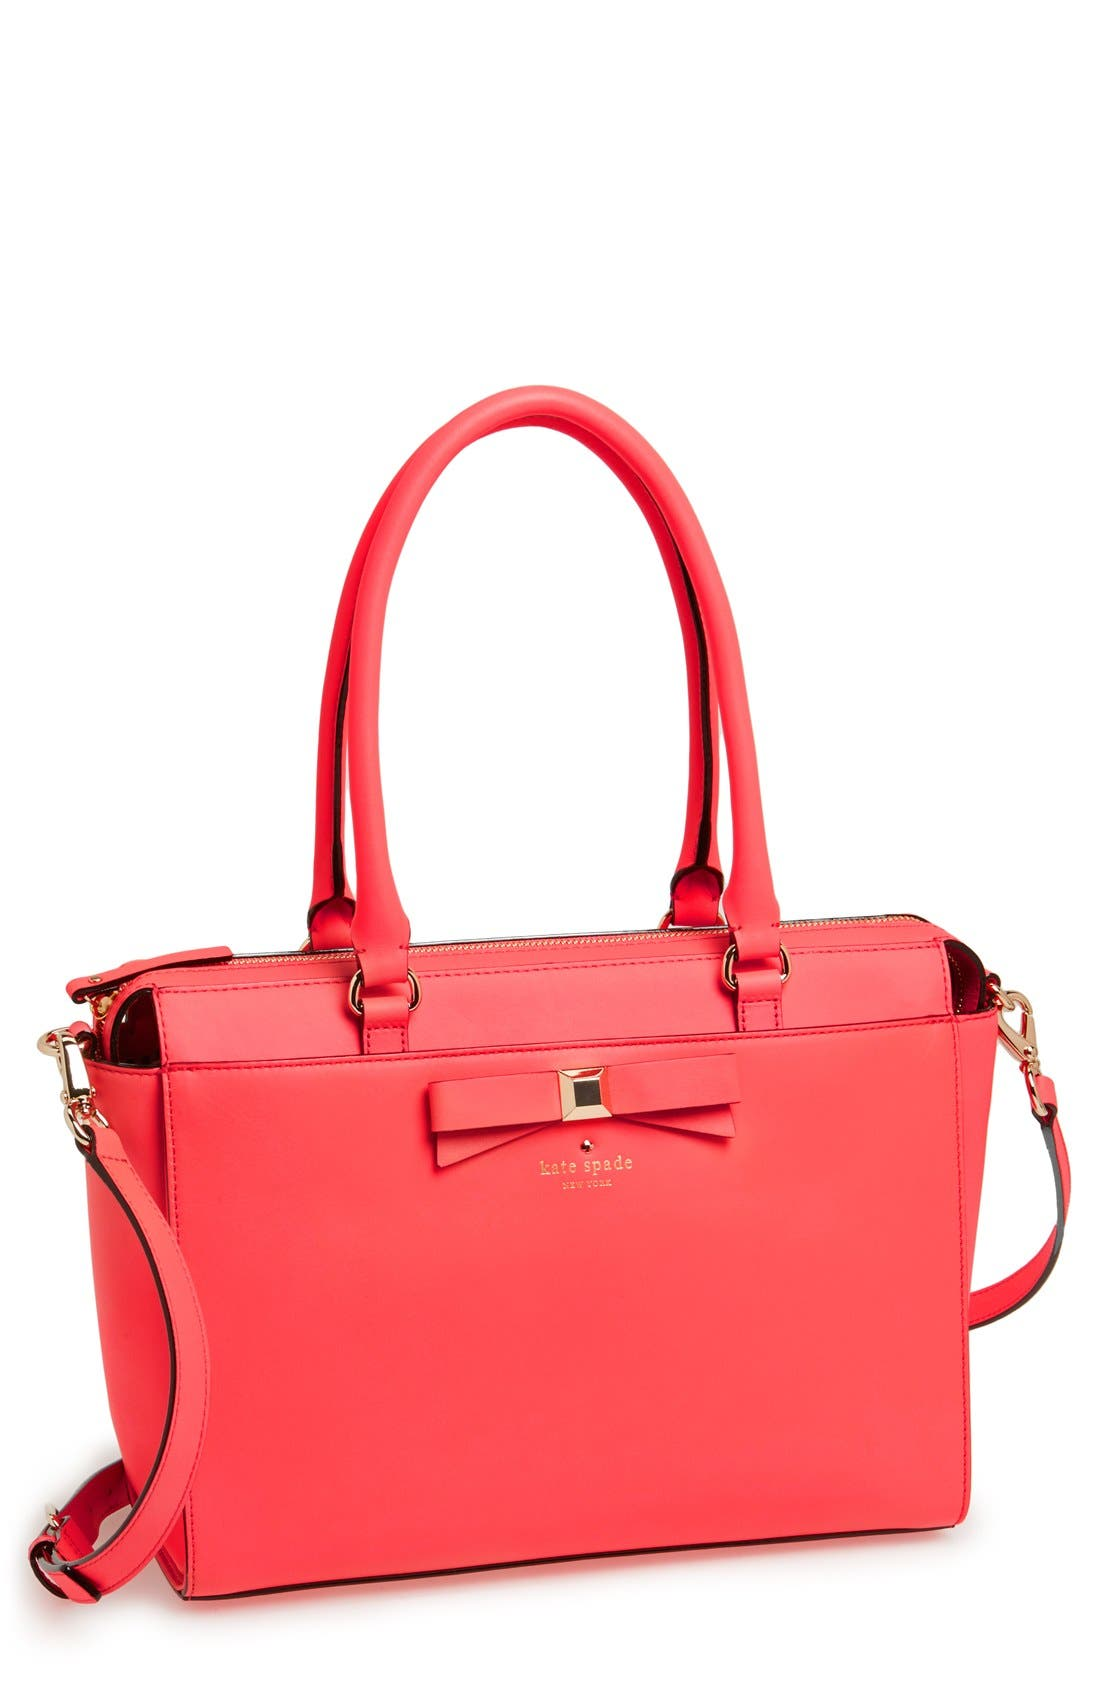 Alternate Image 1 Selected - kate spade new york 'holly street - jeanne' leather tote